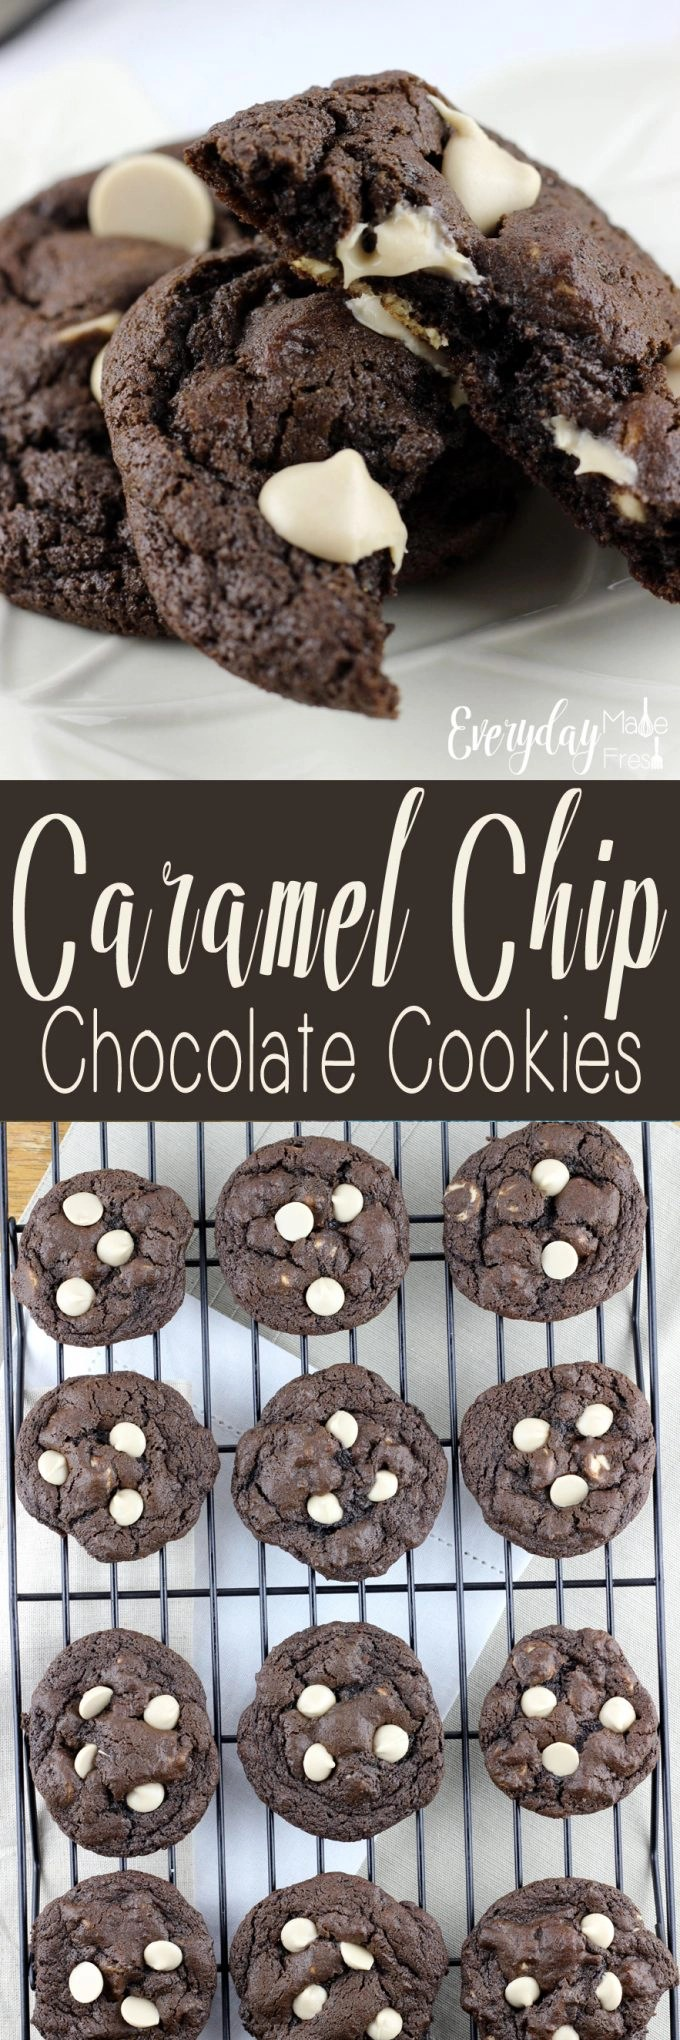 Fudgy, chewy, and with the perfect caramel touch - These Caramel Chip Chocolate Cookies are perfect in every way! | EverydayMadeFresh.com